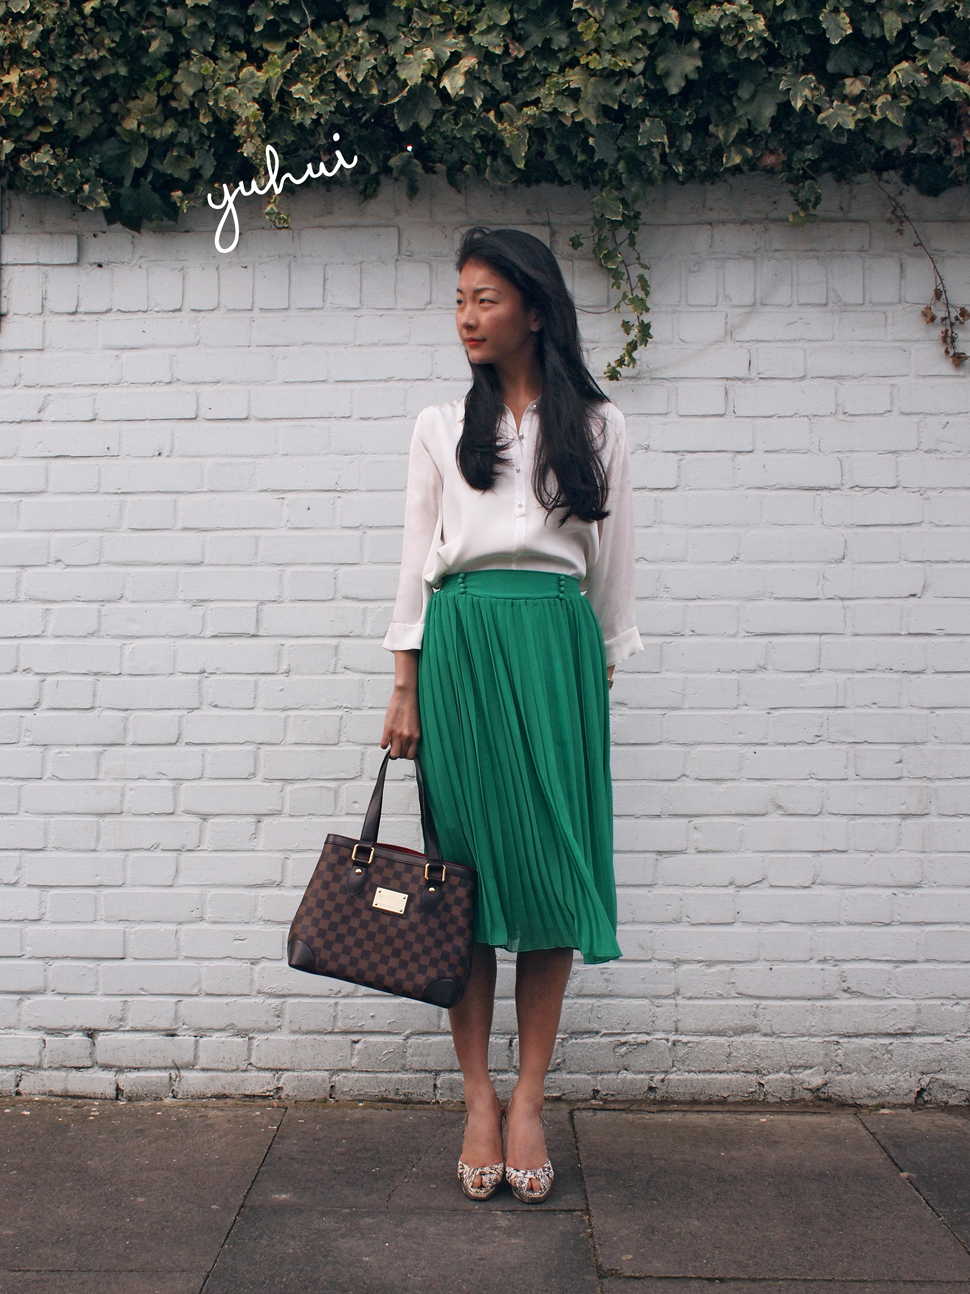 Yuhui wearing Marina London